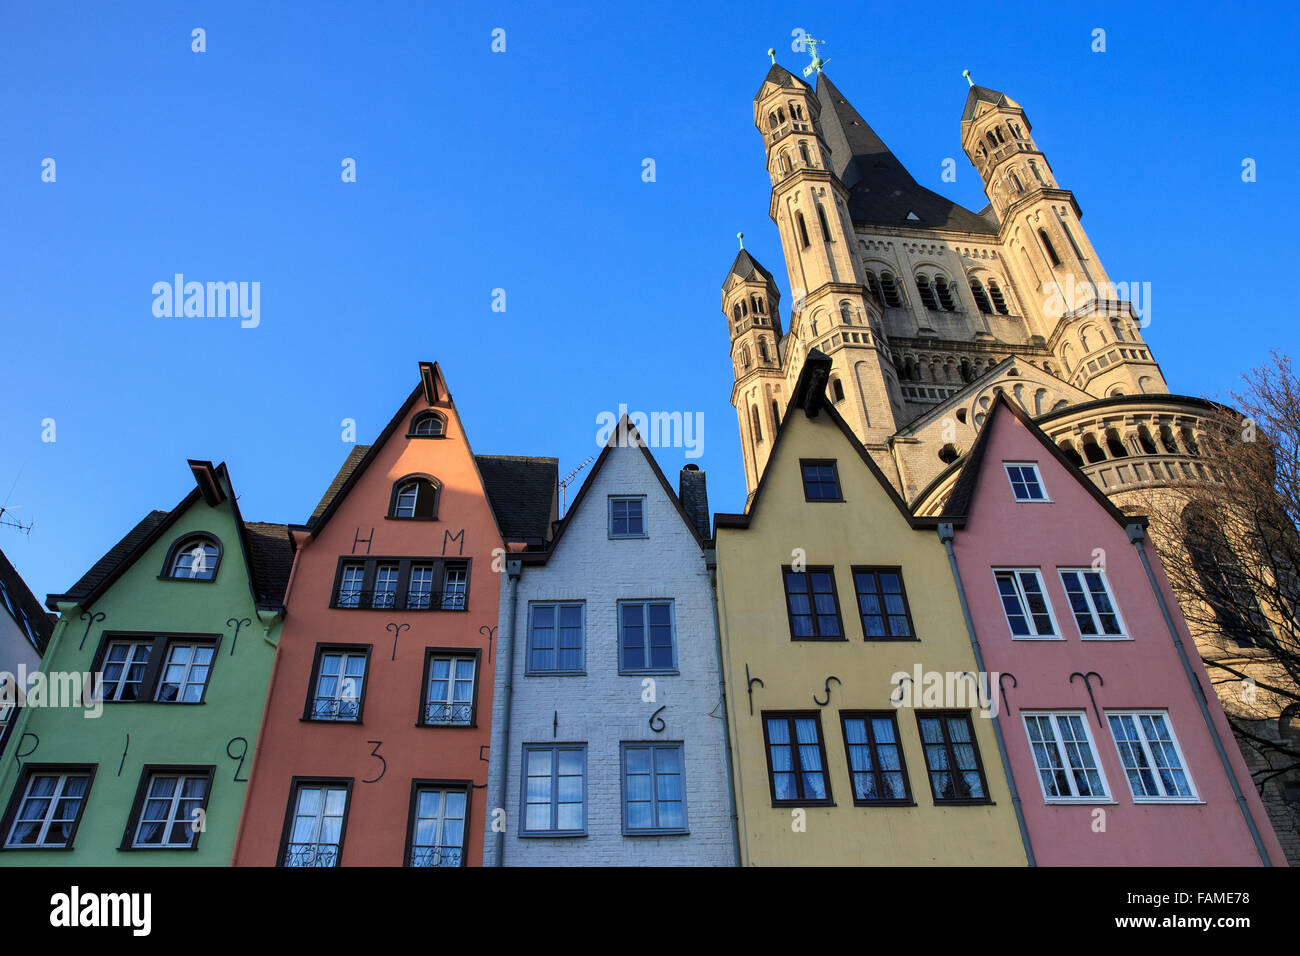 cologne, Gross St. Martin, on the Fischmarkt - Stock Image